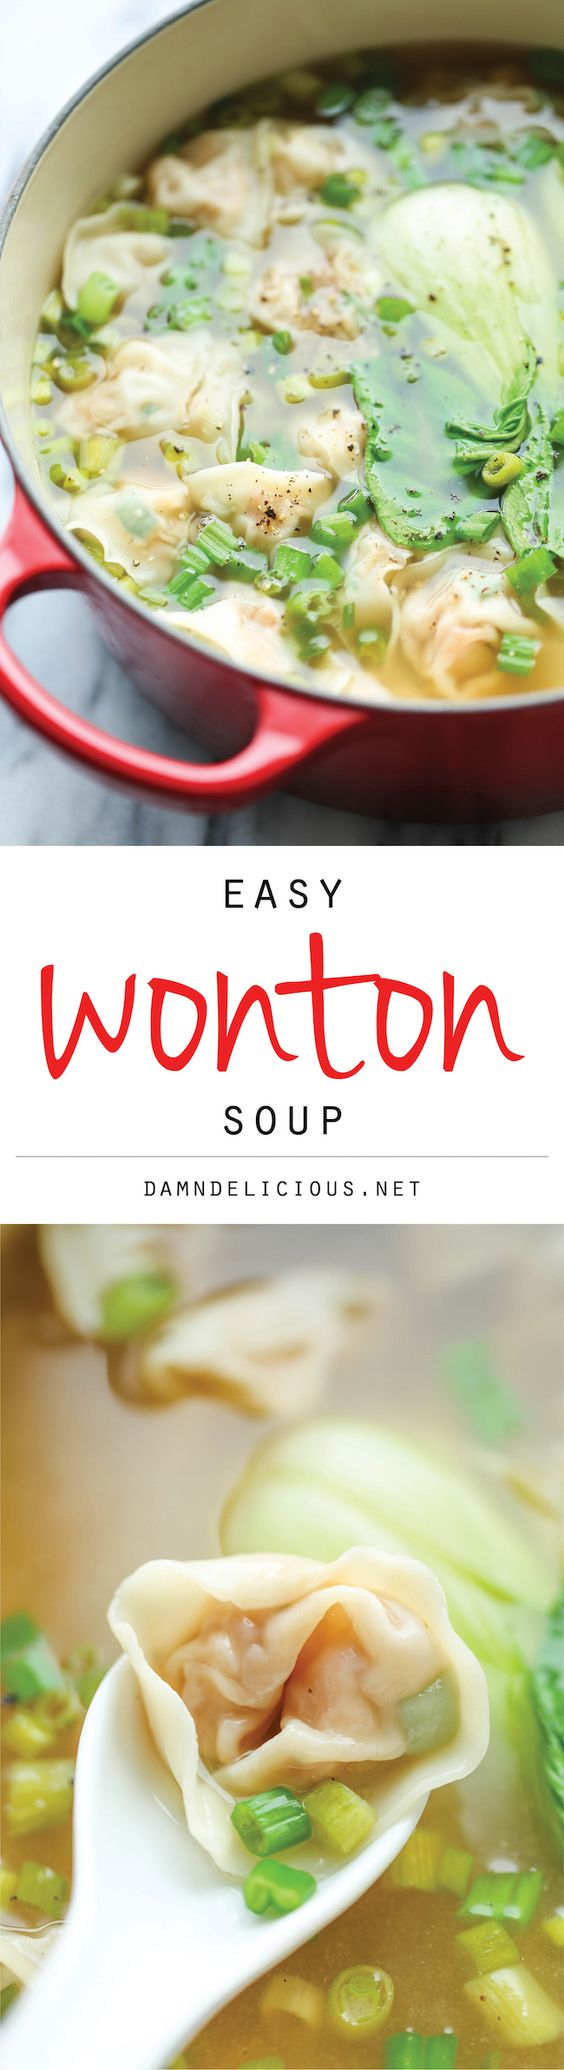 Easy Wonton Soup Recipe | Damn Delicious - The BEST Homemade Soups Recipes - Easy, Quick and Yummy Lunch and Dinner Family Favorites Meals Ideas #soup #souprecipes #homemadesoup #soups #easysouprecipes #easyrecipes #lunchrecipes #fallrecipes #winterrecipes